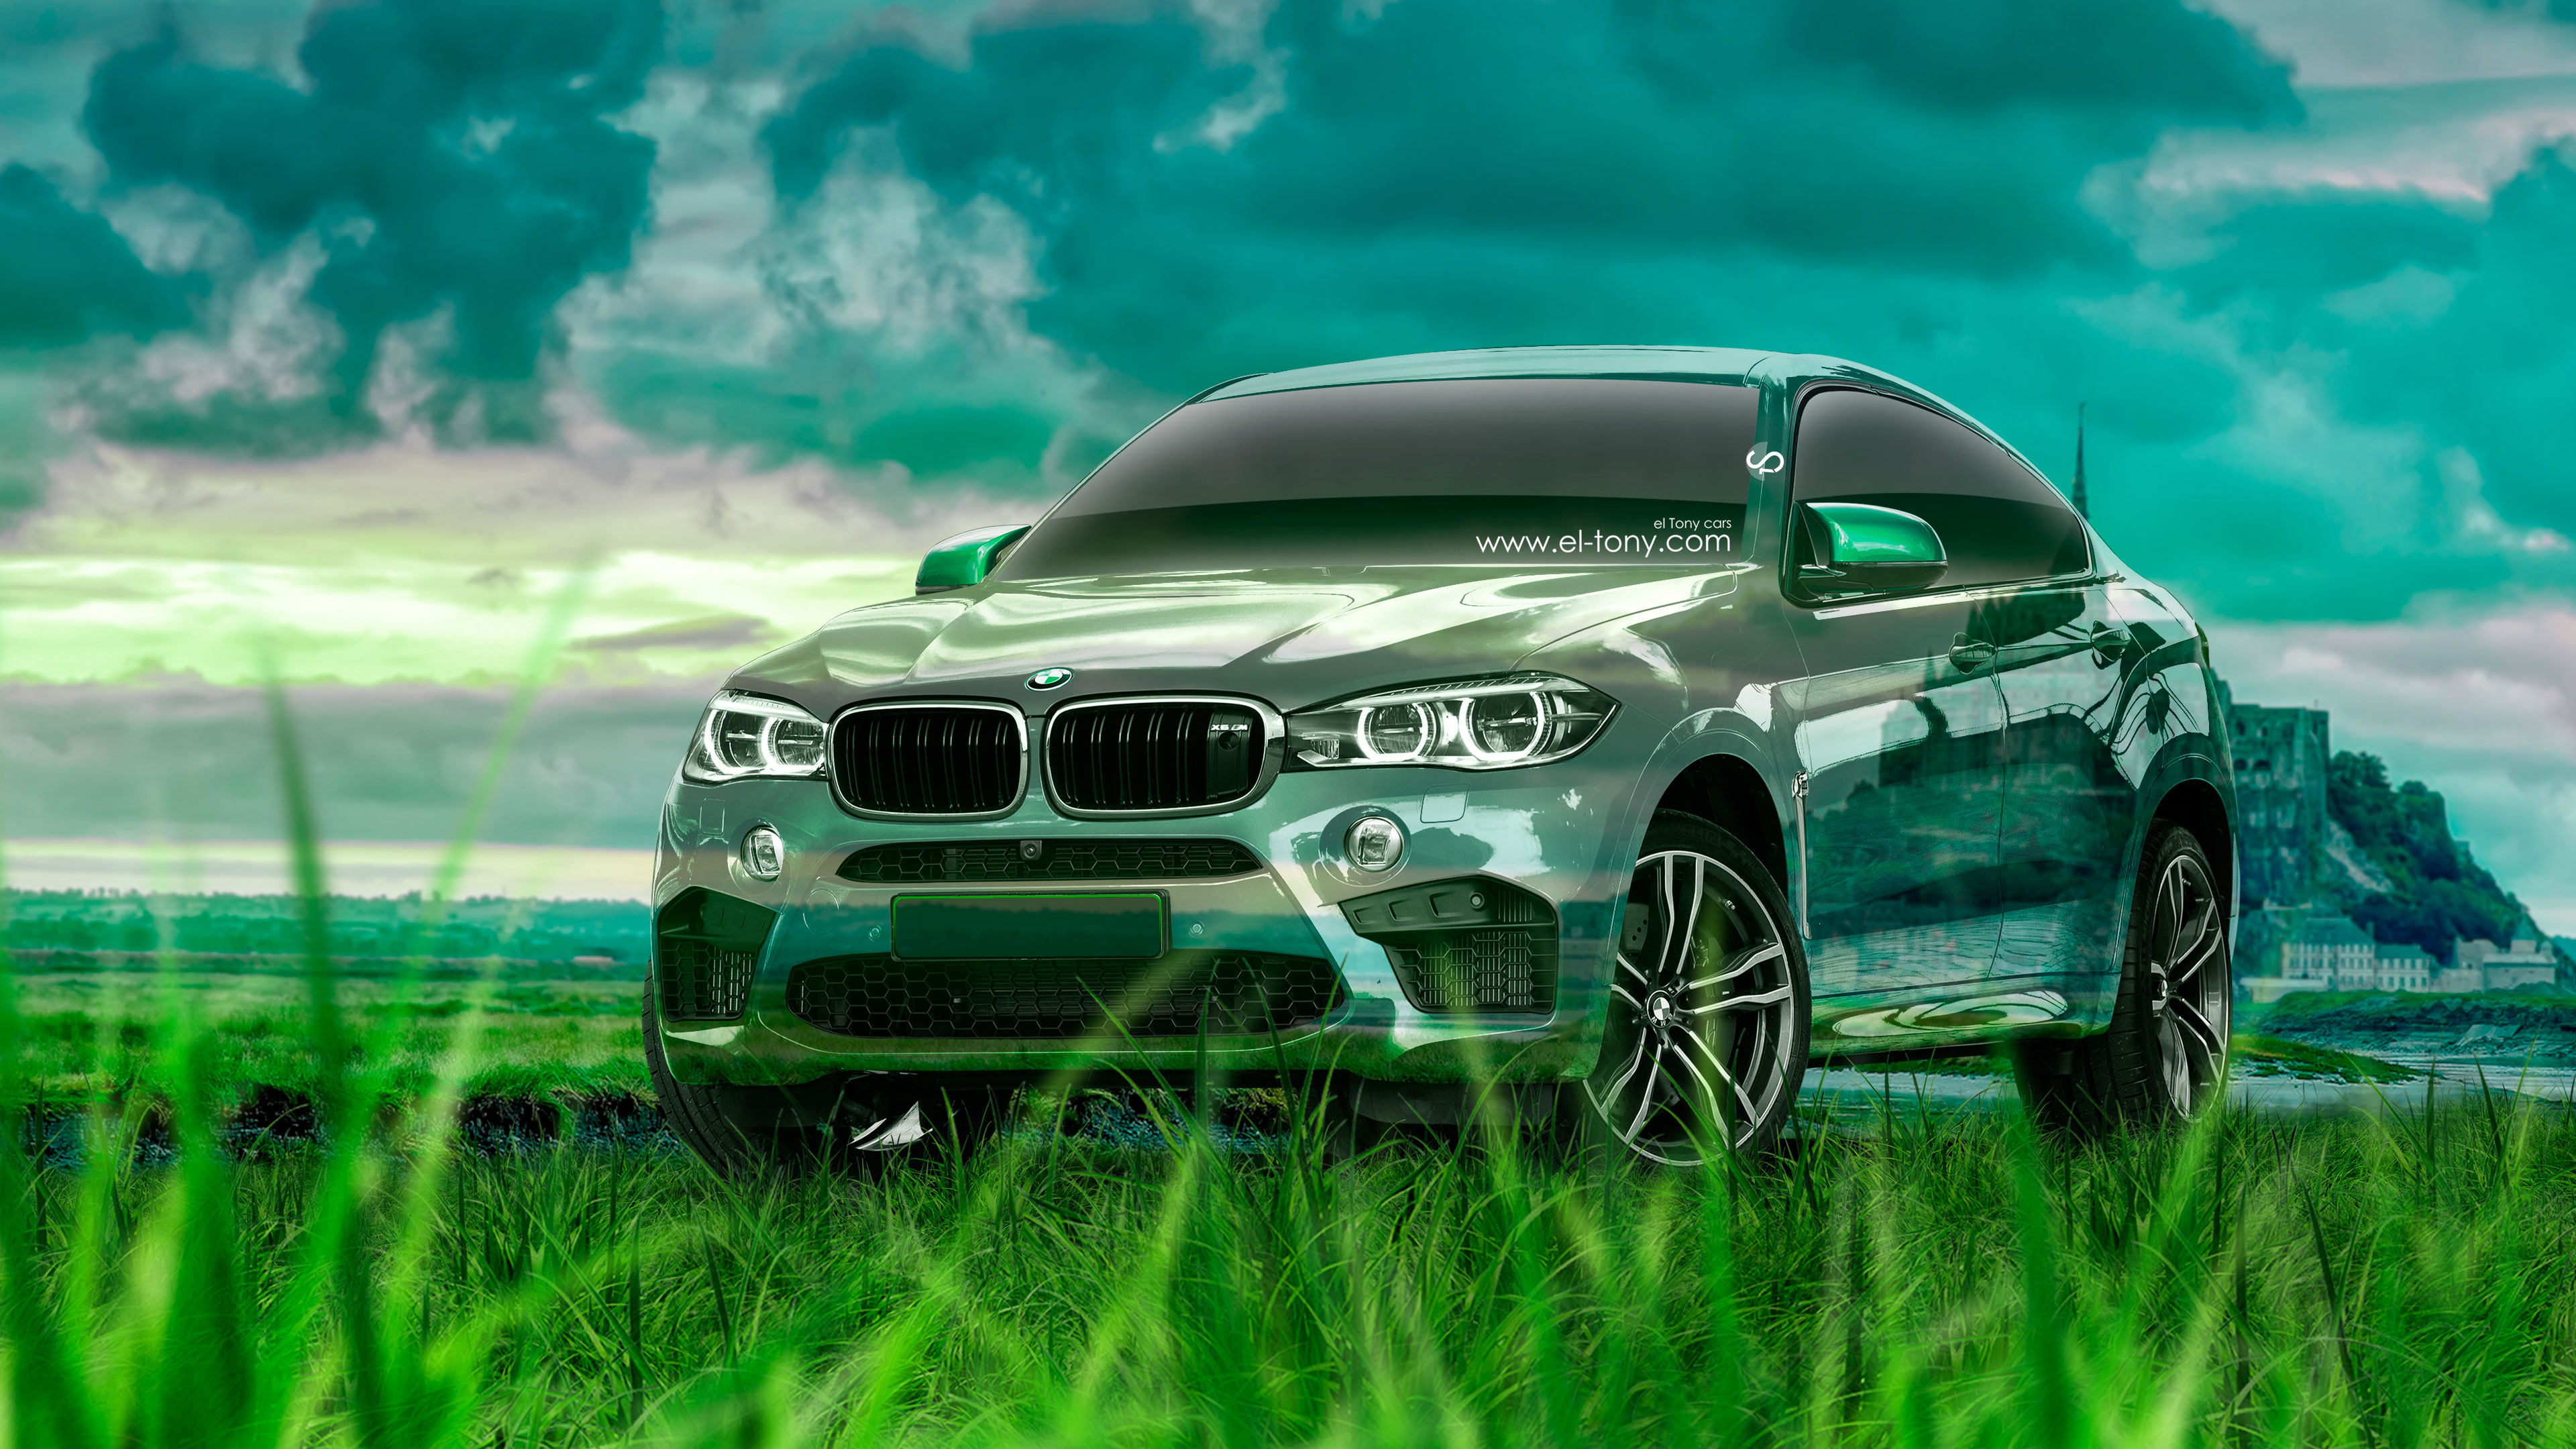 BMW X6 M Tuning Crossover Crystal Nature Car